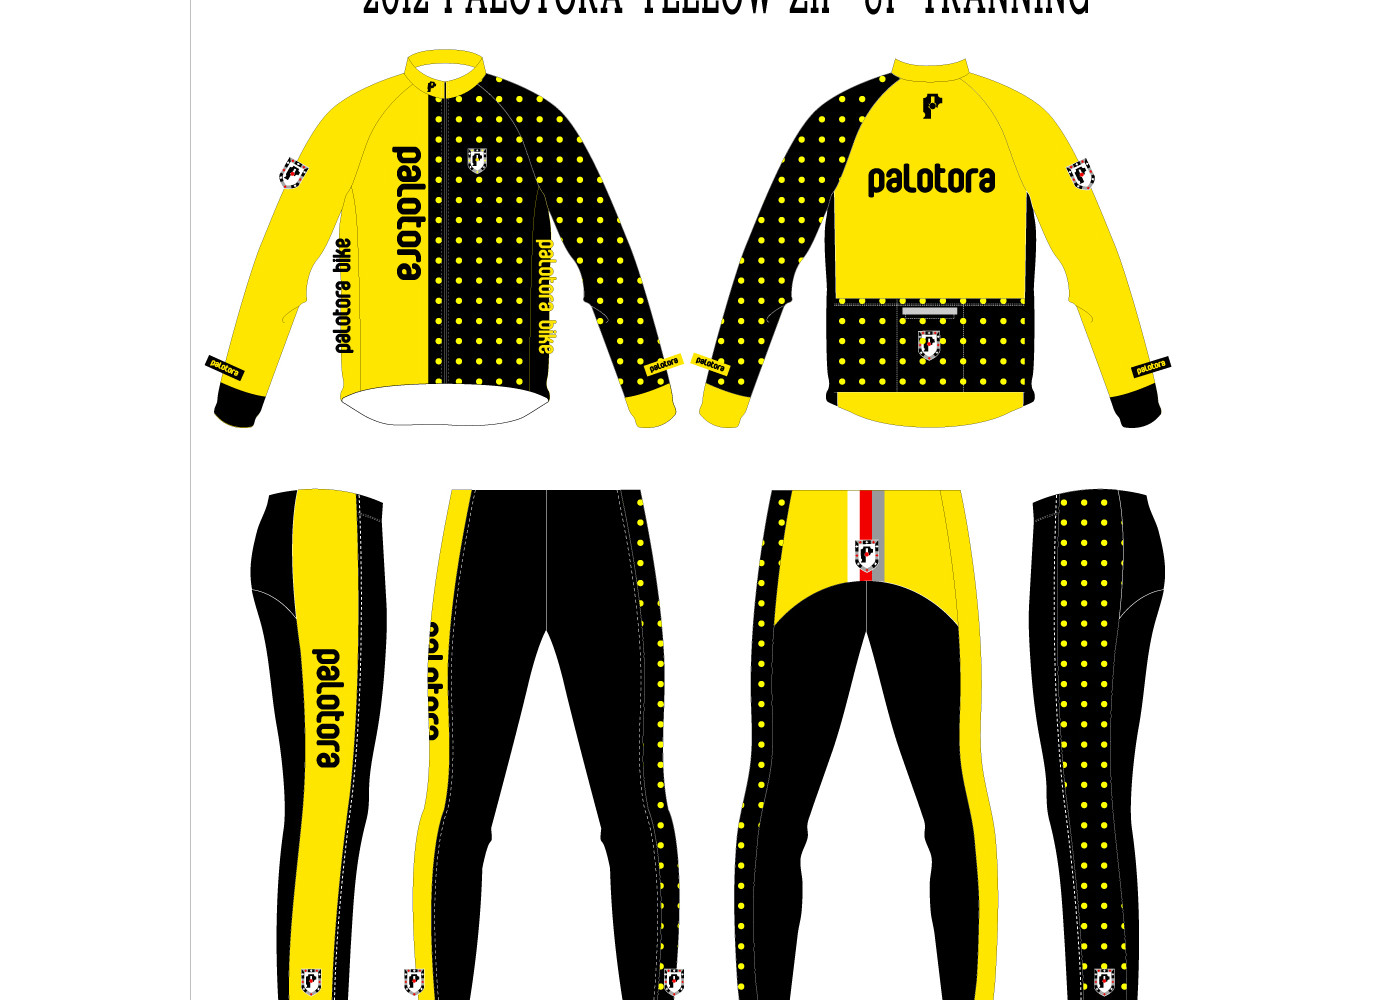 PALOTIRA MJ-3 ZIP SUIT